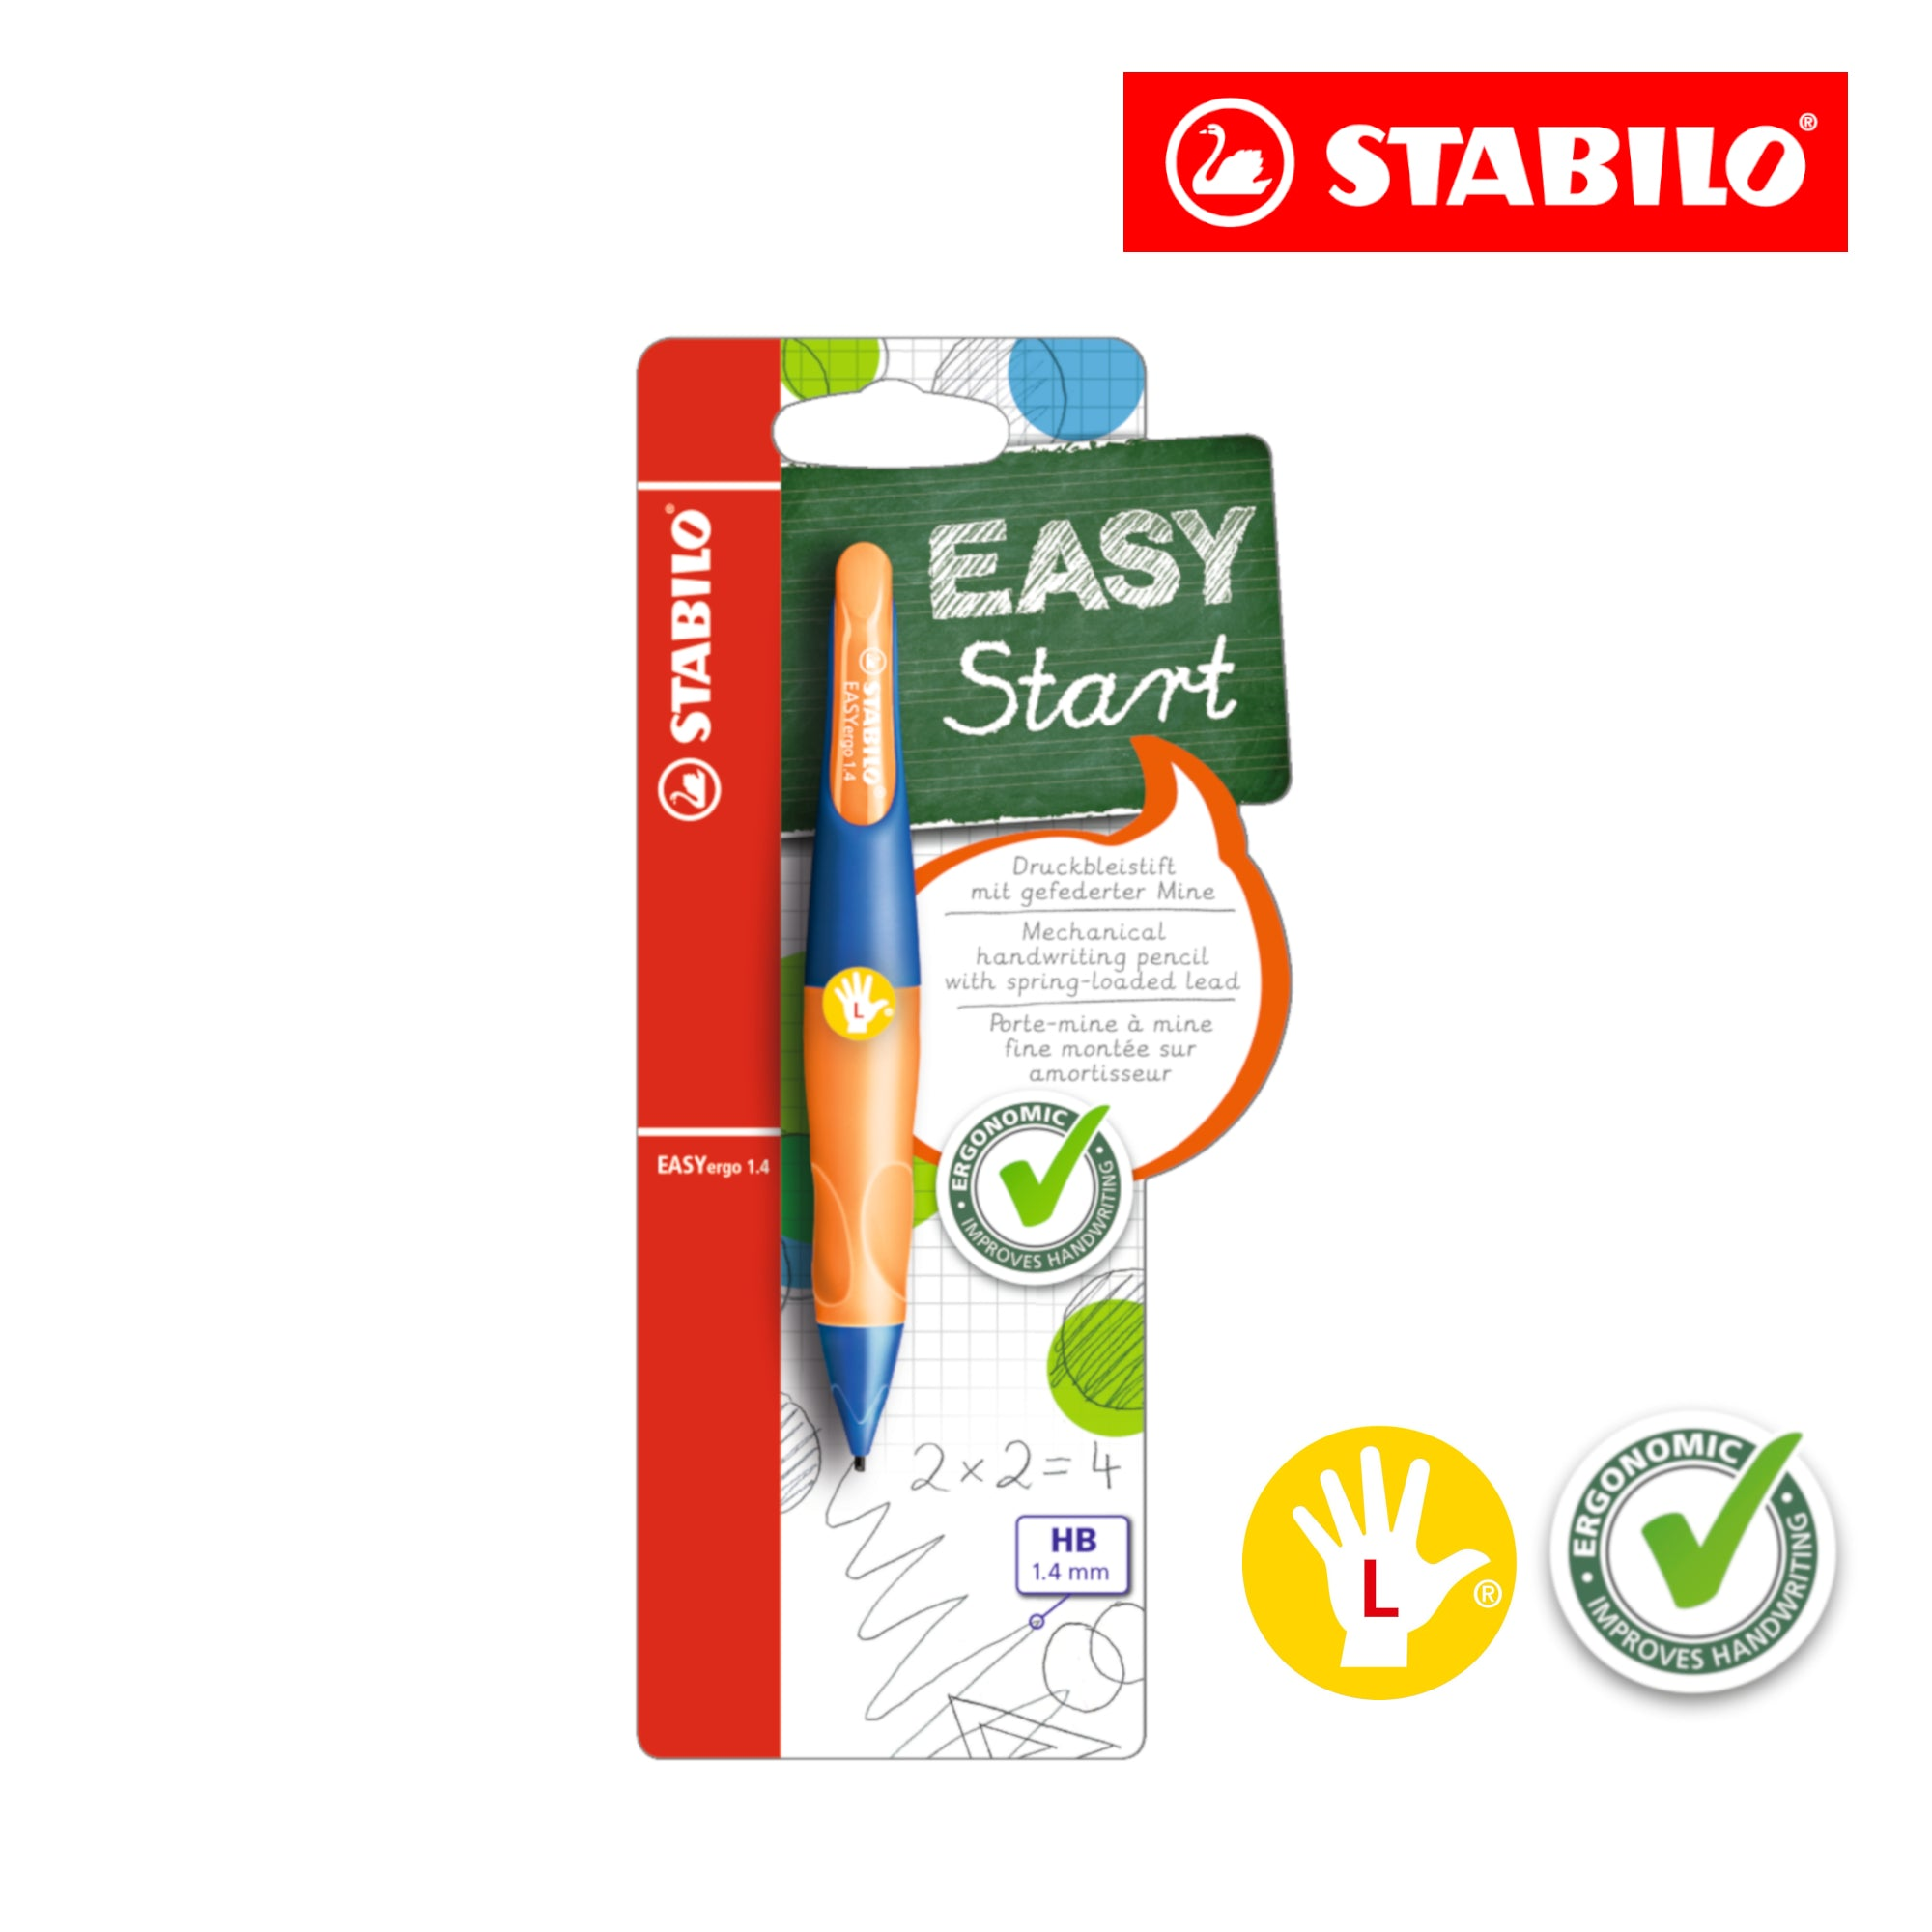 STABILO EASYergo 1.4mm Ergonomic Mechanical Pencil (Left-Hander) - Schwan-STABILO -Most colourful Stationery Shop